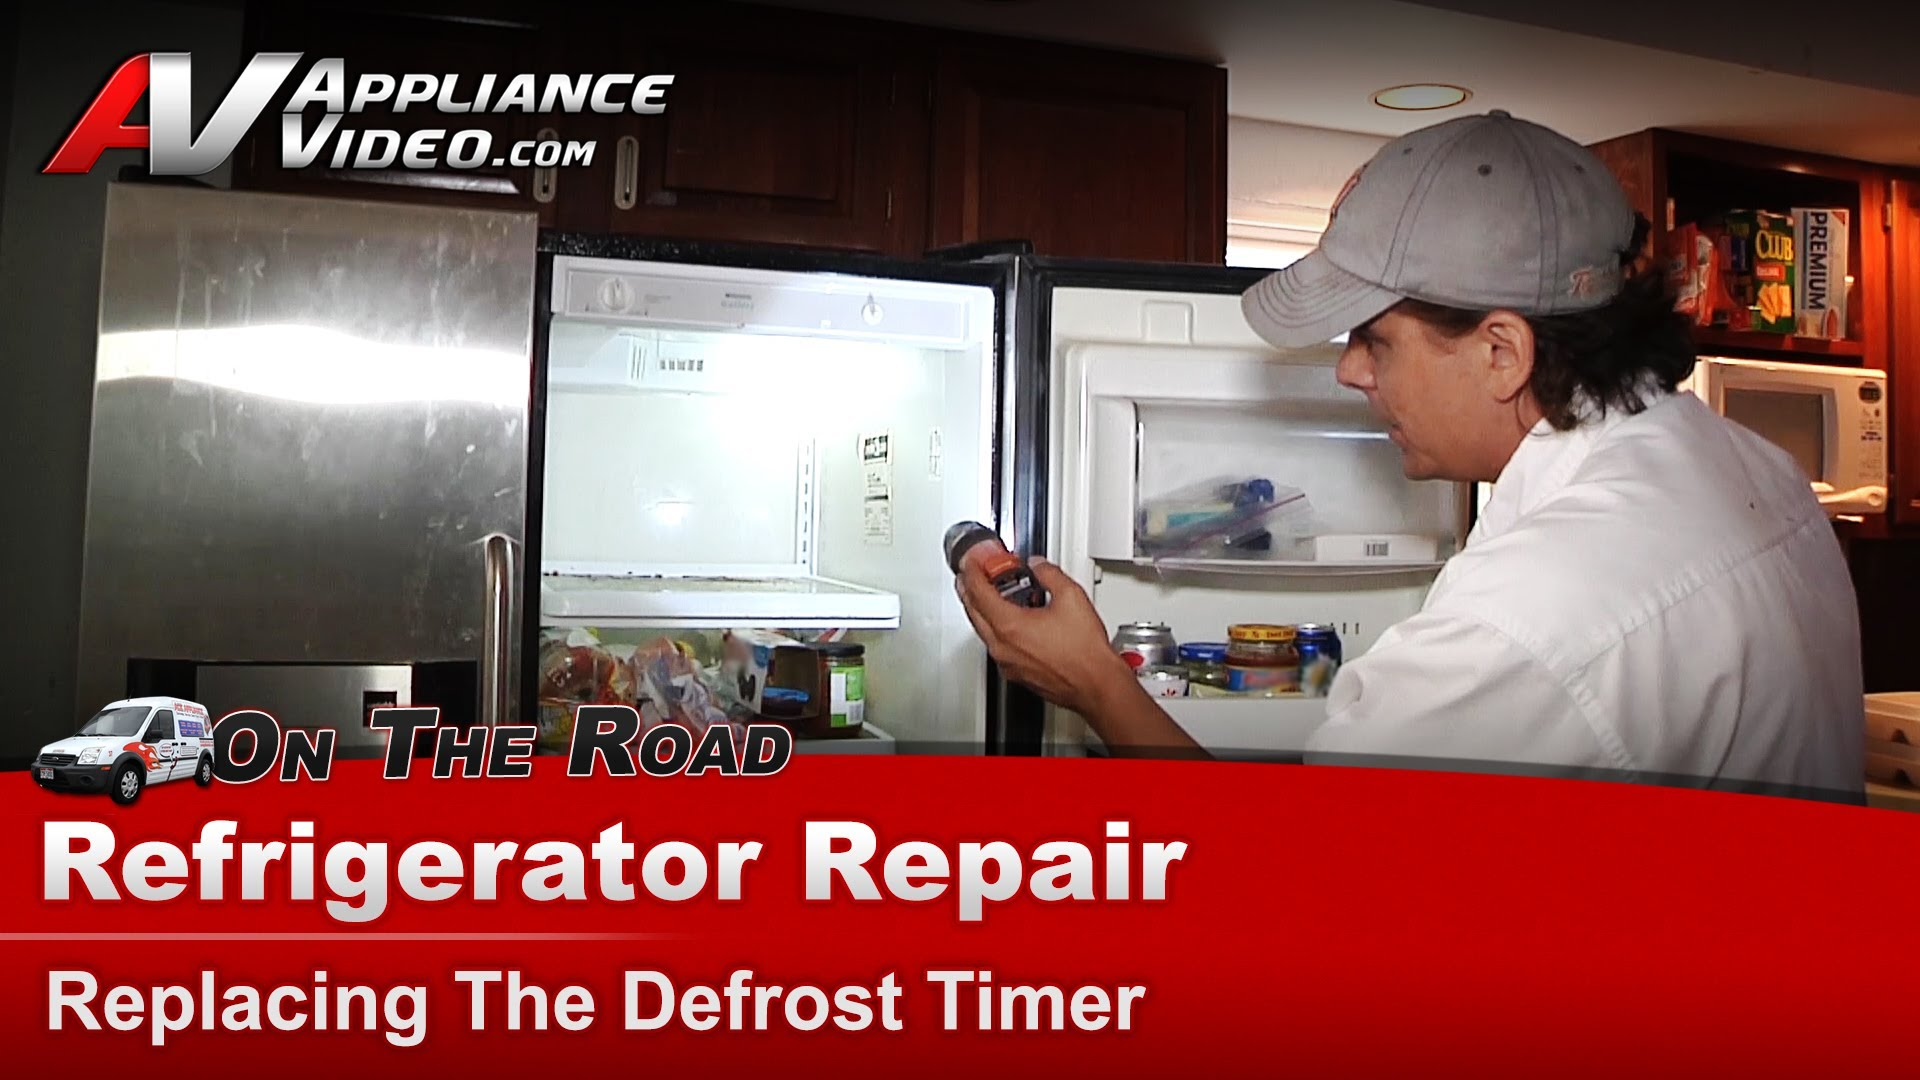 Frigidaire Frs24wscb1 Refrigerator Repair Replacing The